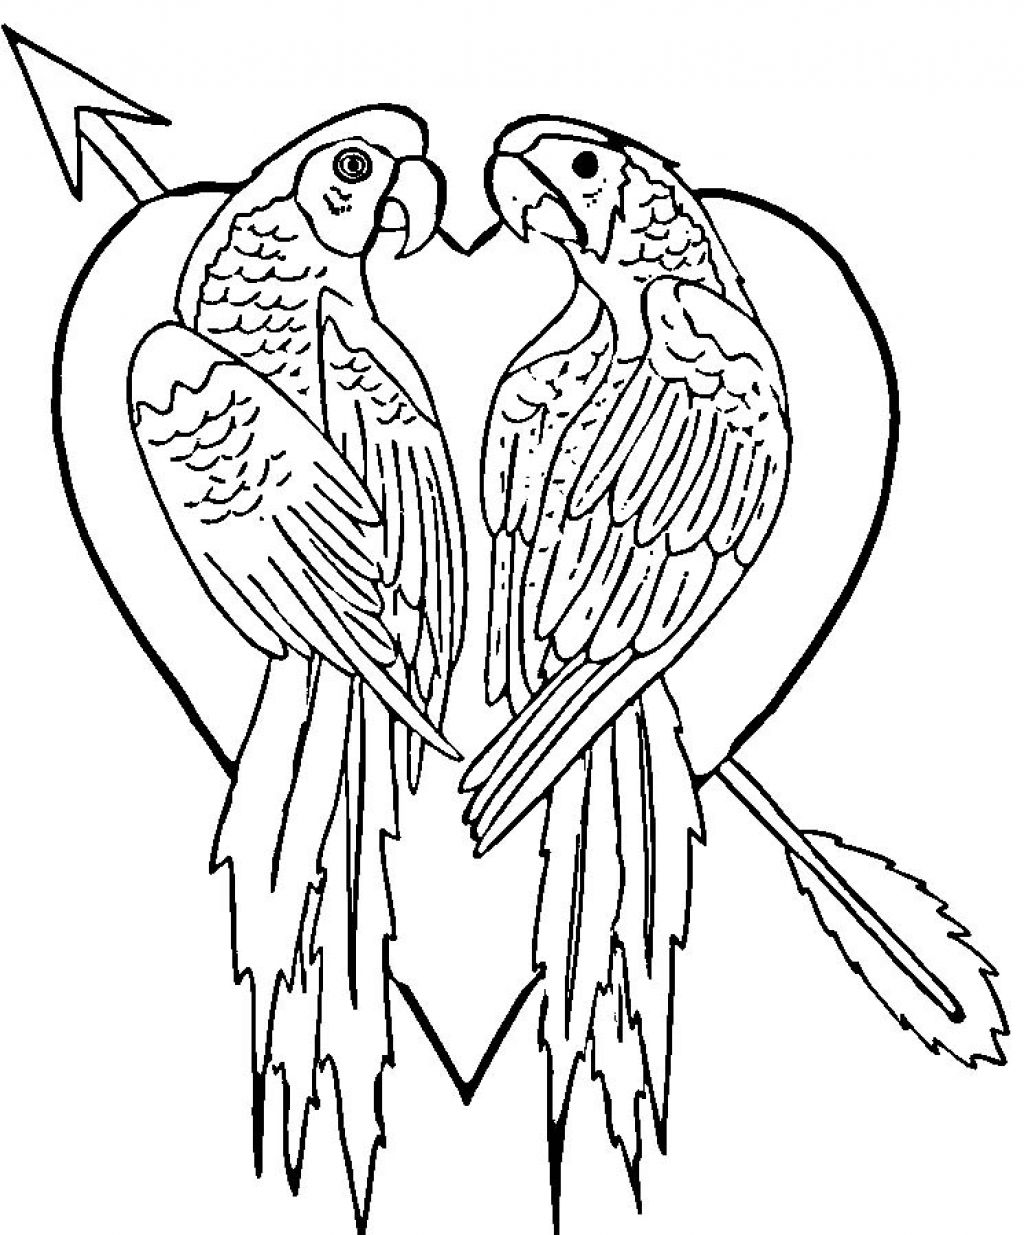 picture of parrot for colouring smiley coloring pages of parrot for kids of colouring parrot picture for